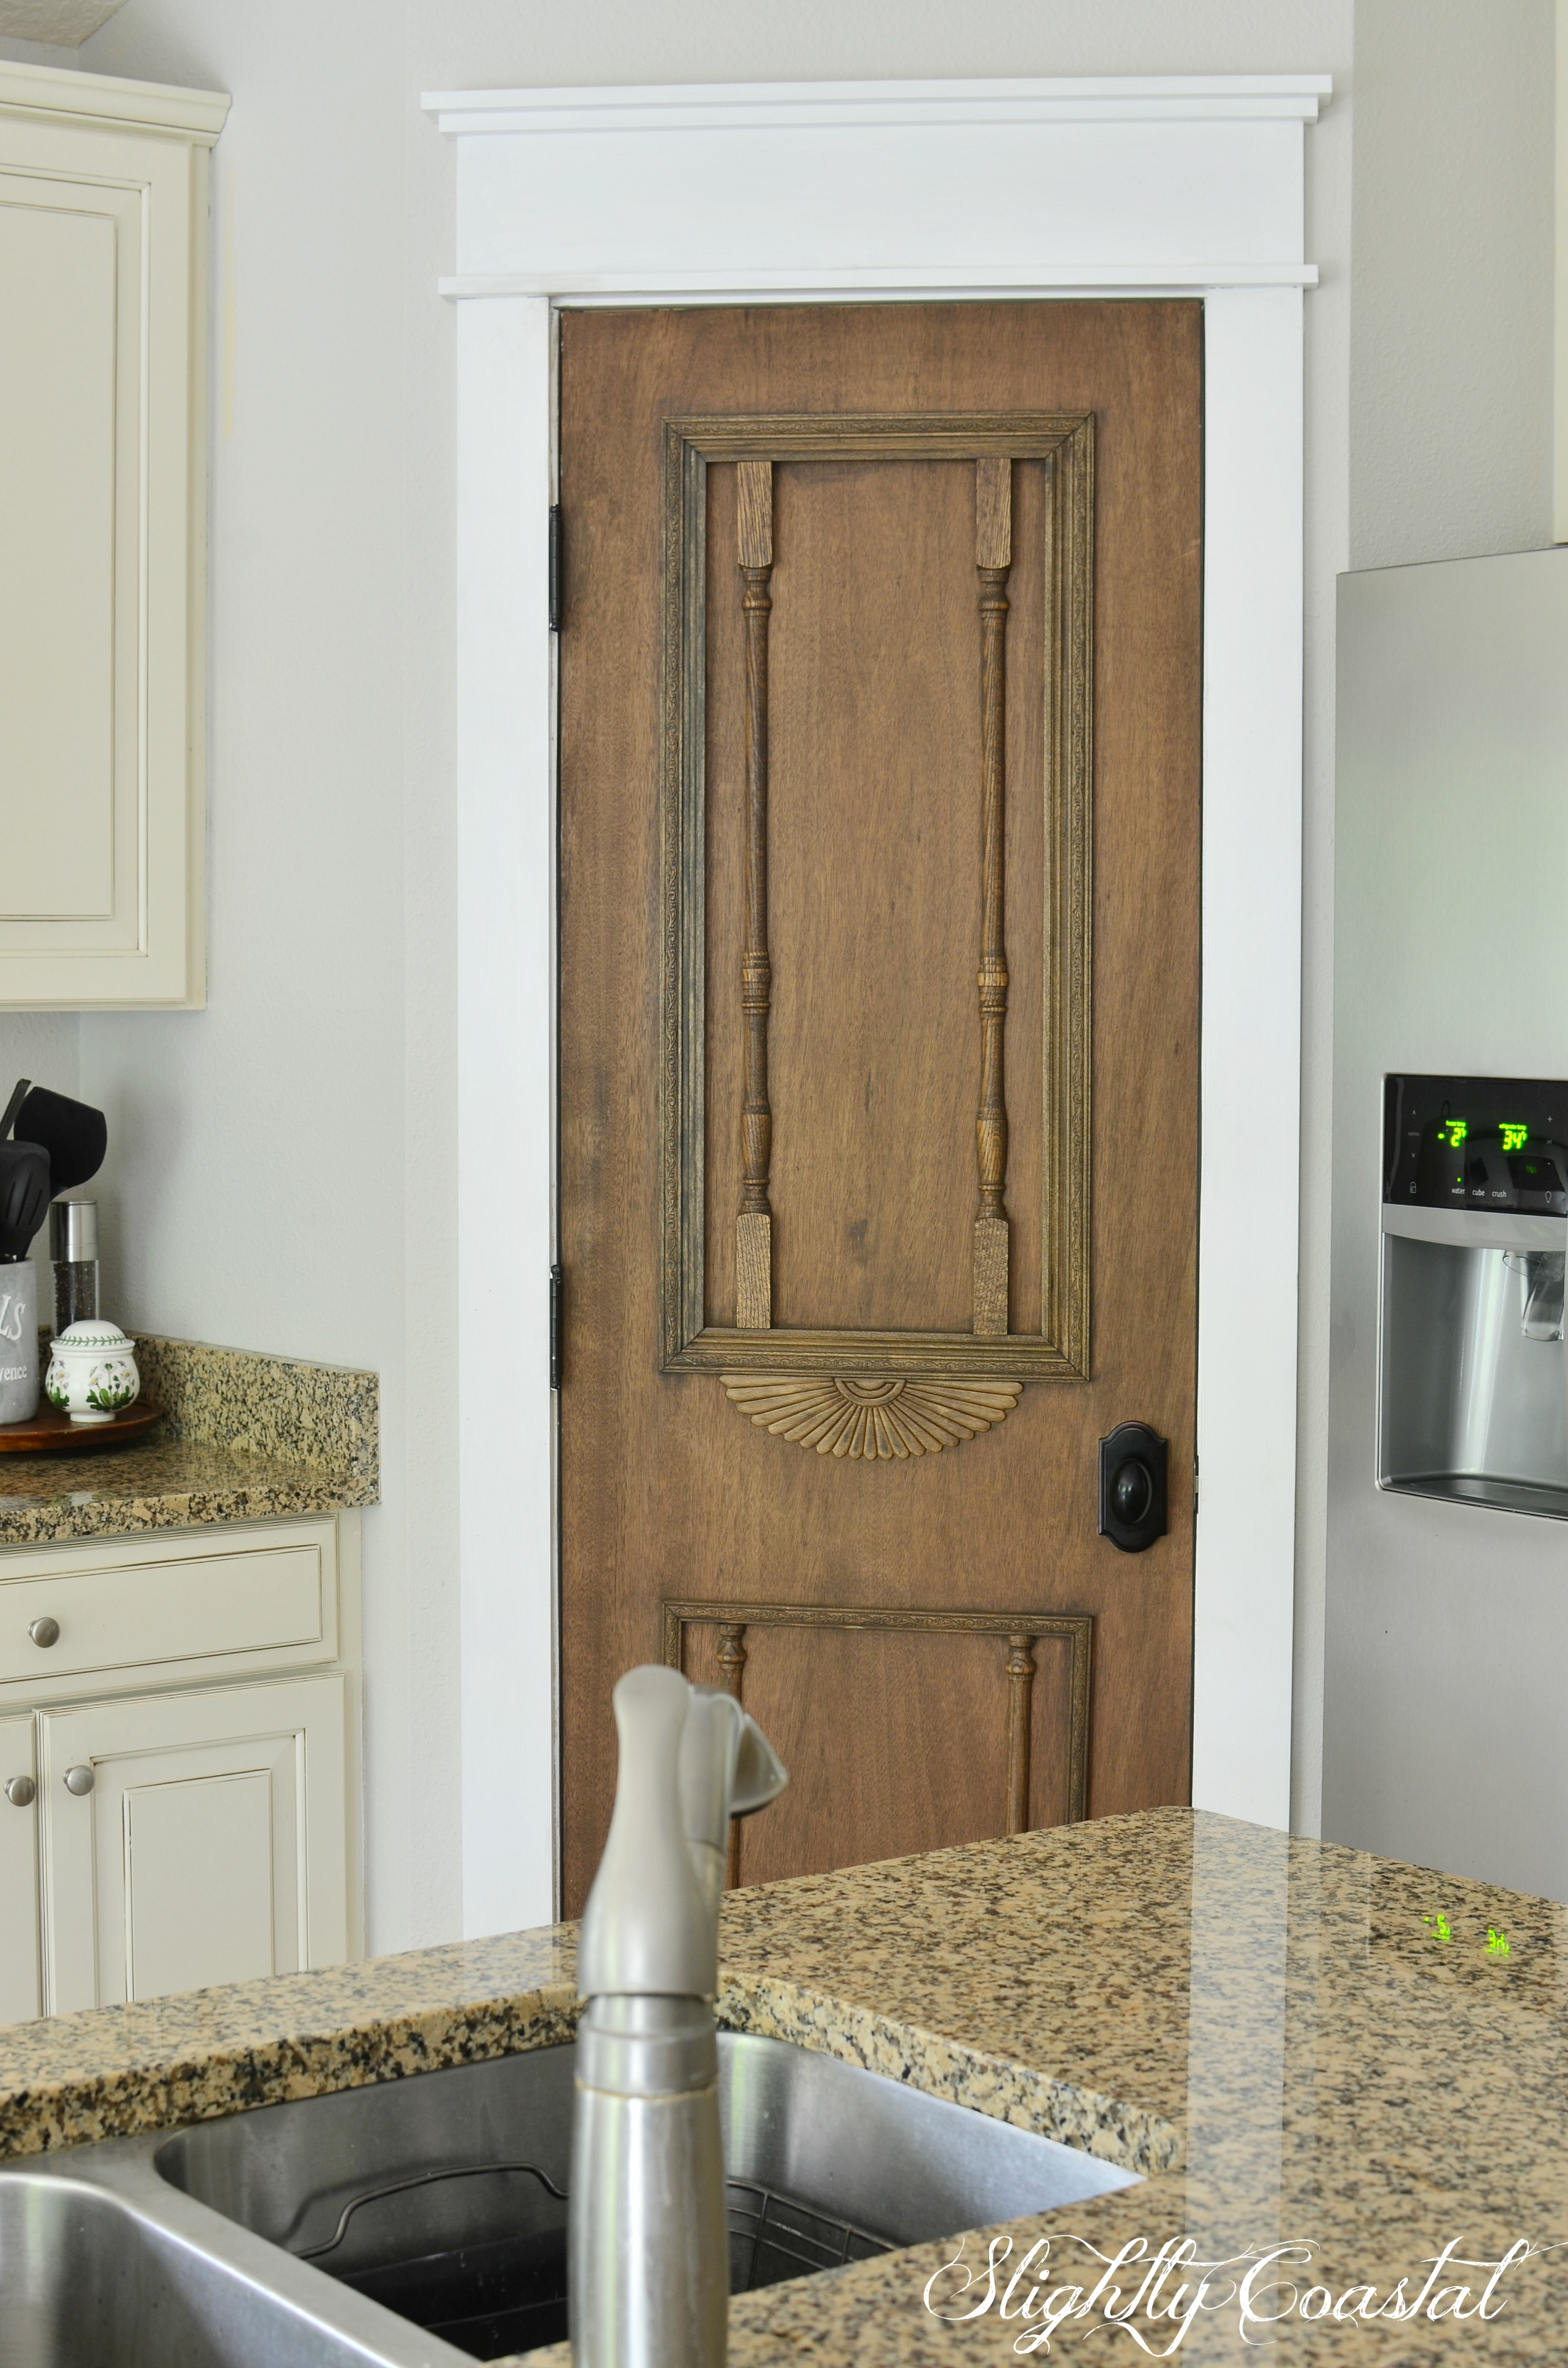 Lovely I Was Able To Take My Brush And Add Variance To The Door To Achieve The Vintage  Look I Was Going For.